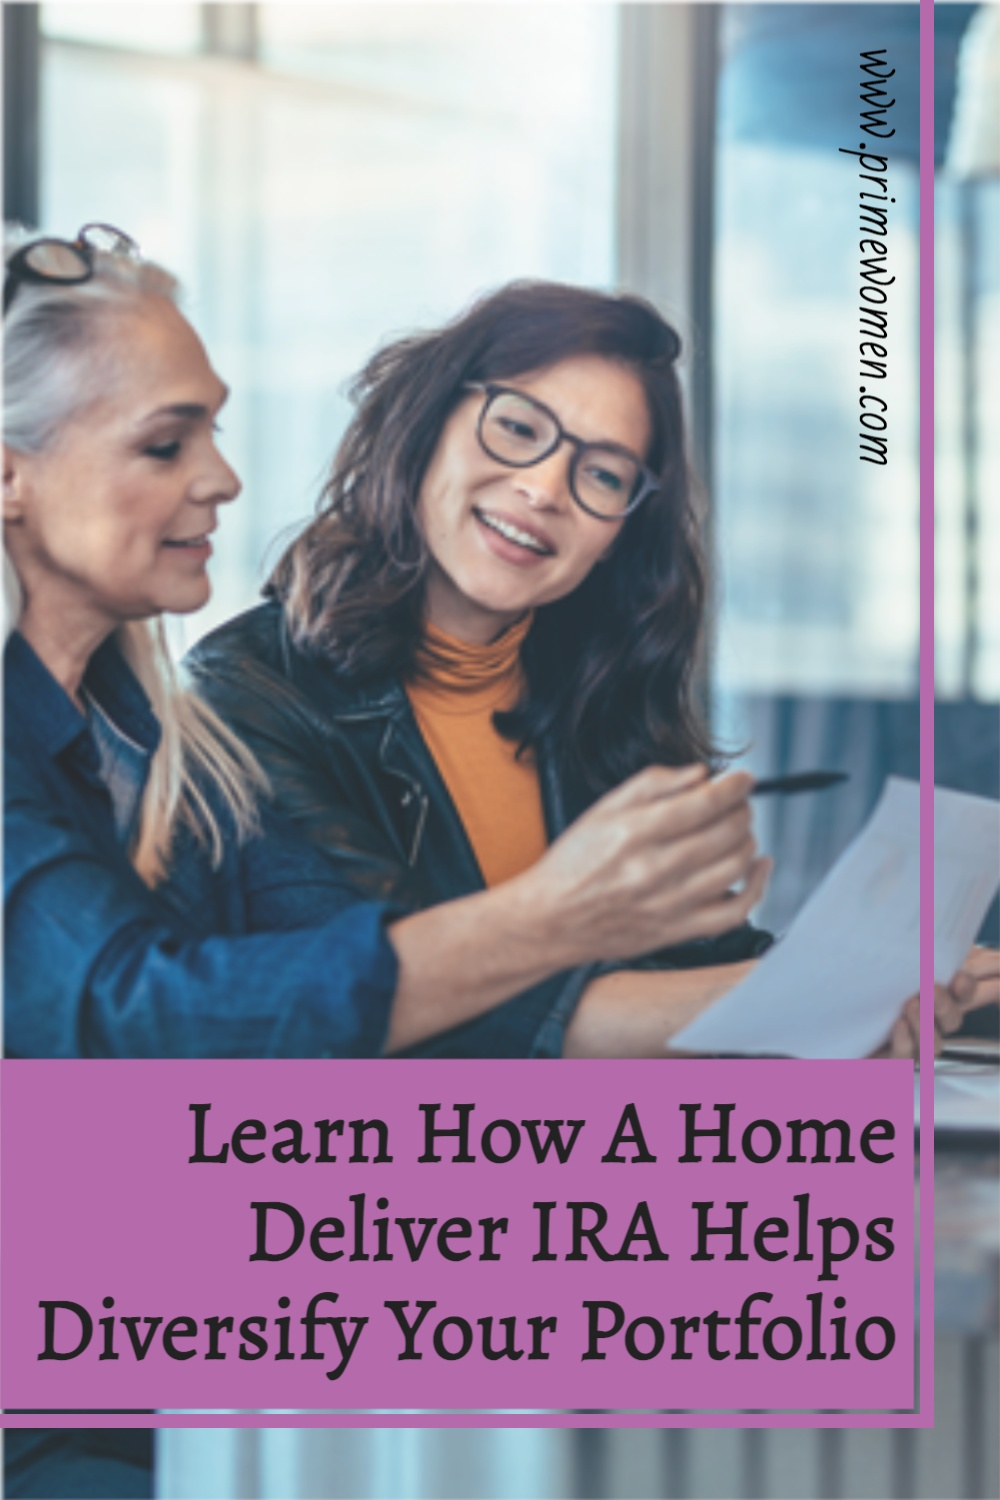 Learn-How-A-Home-Deliver-IRA-Helps-Diversify-Your-Portfolio